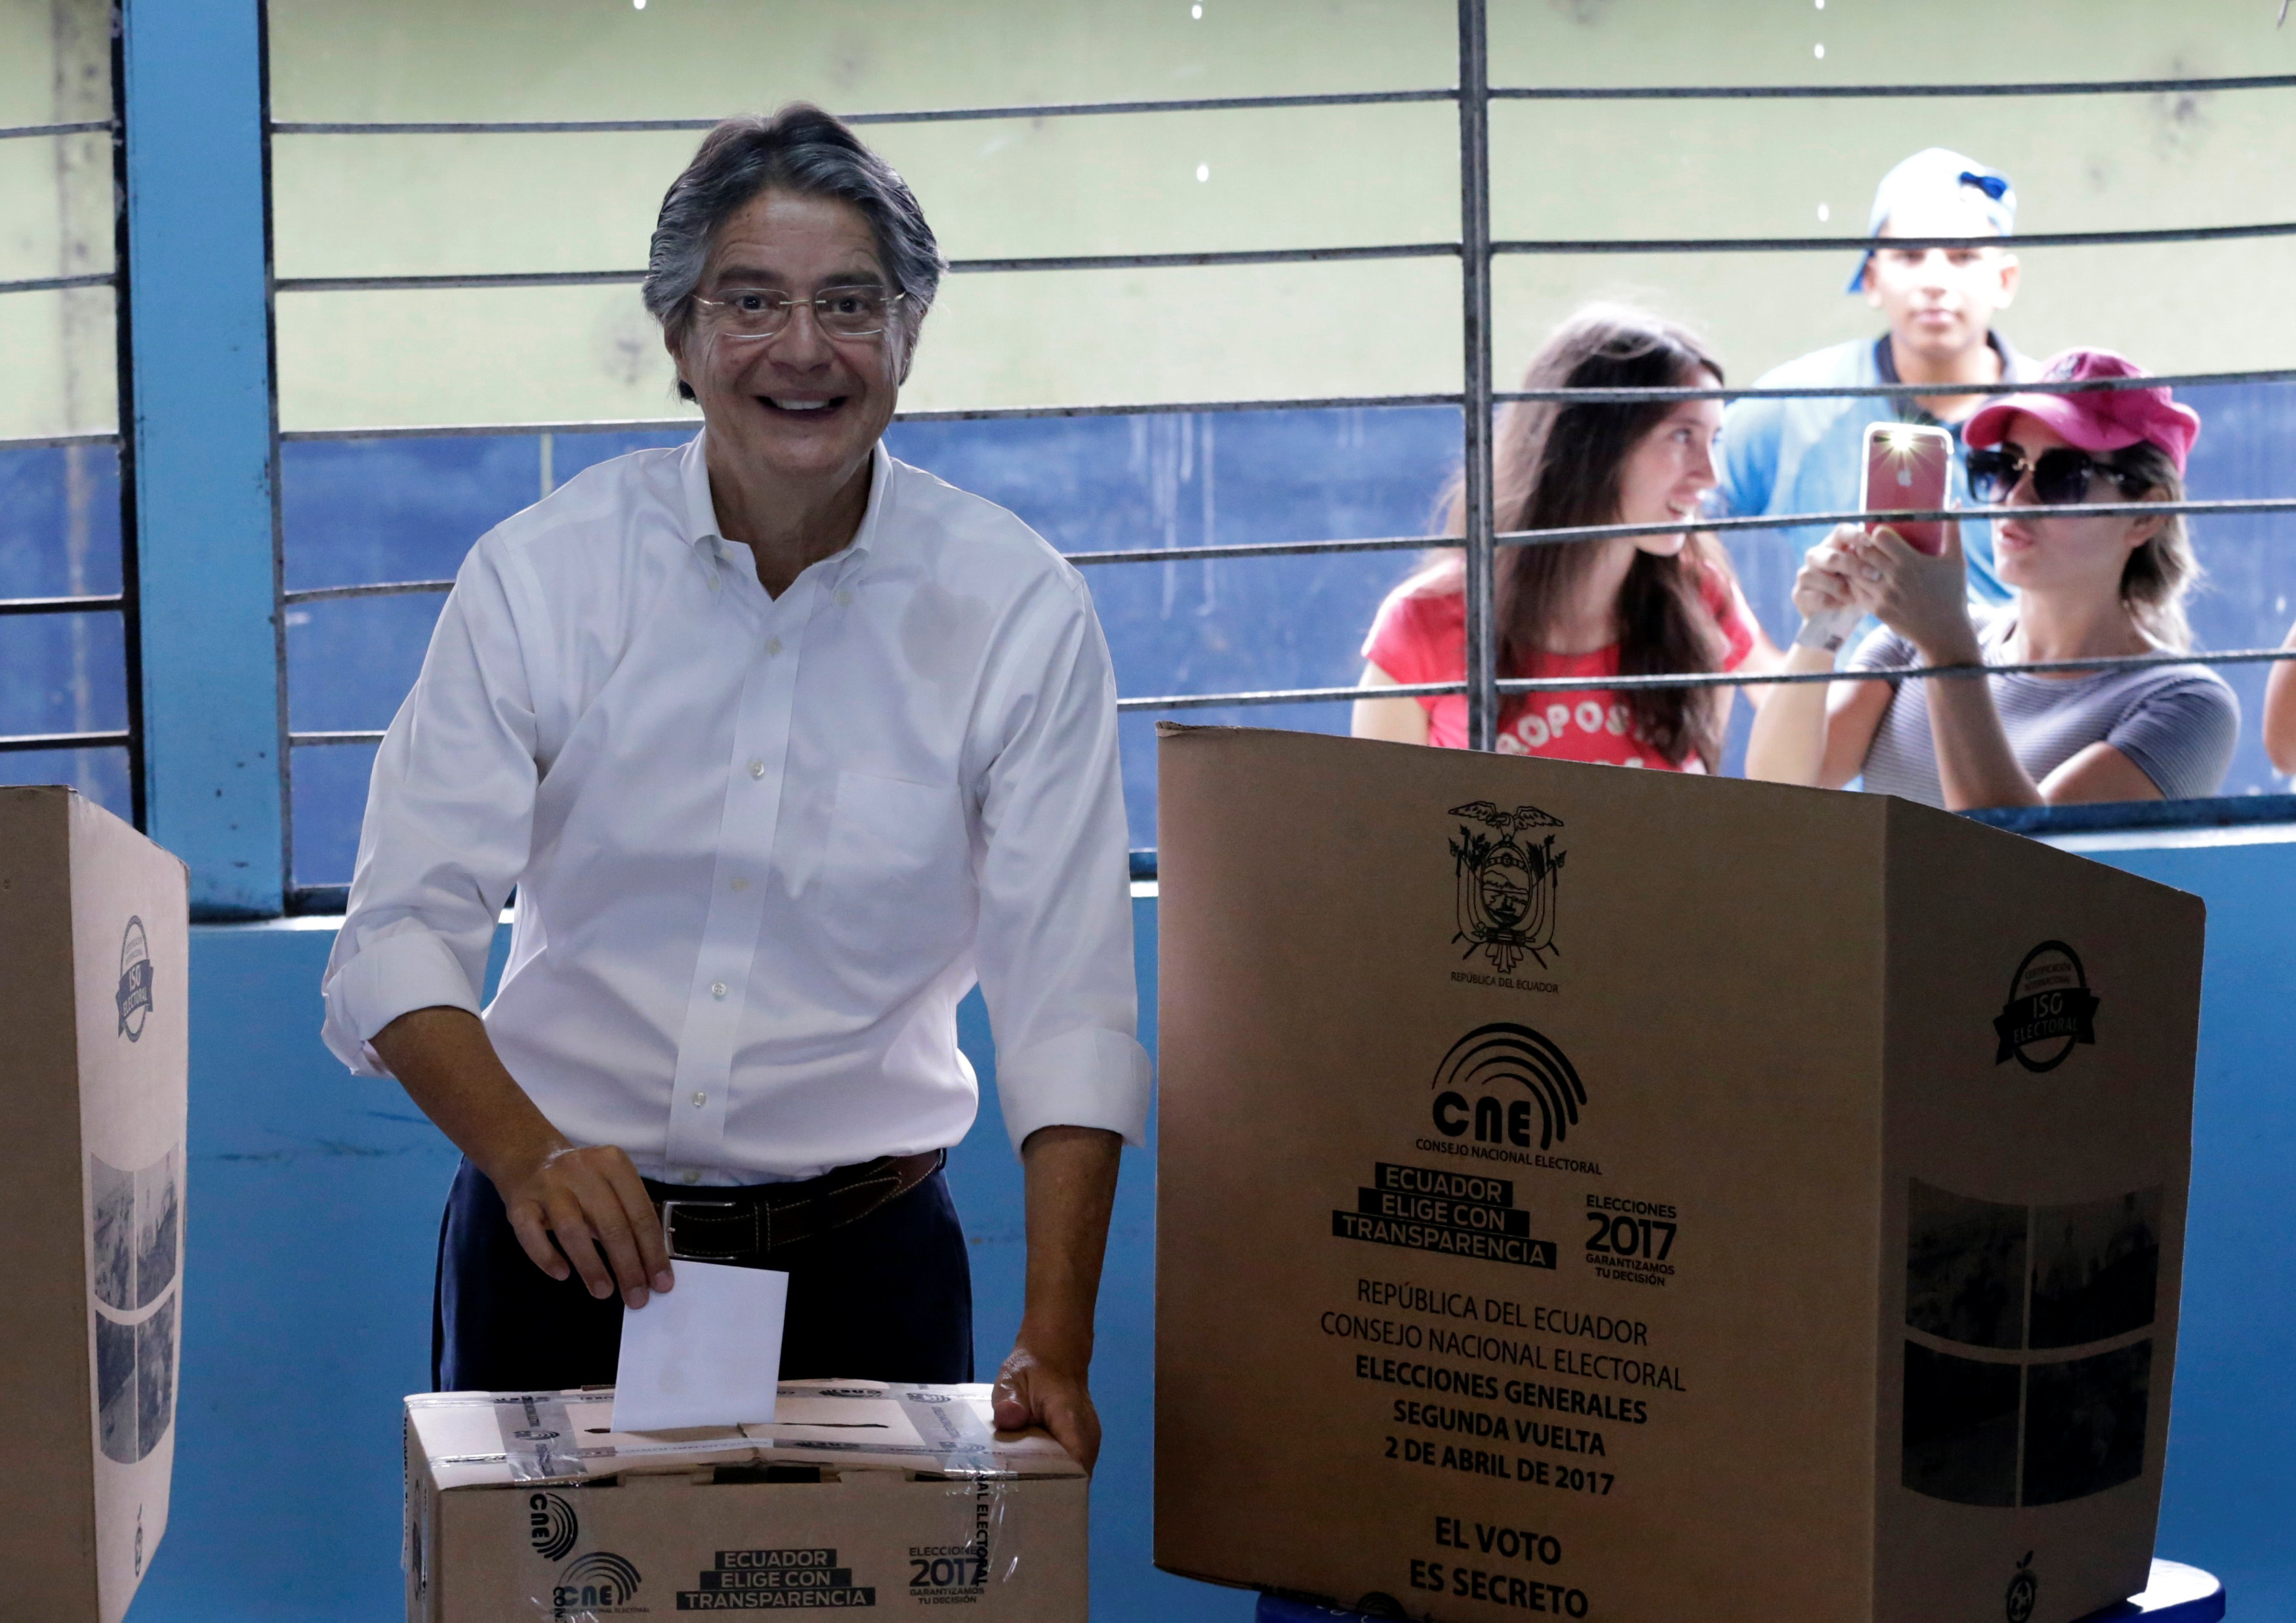 Ecuadorean presidential candidate Guillermo Lasso casts his vote during the presidential election in Guayaquil, Ecuador on April 2, 2017. (REUTERS/Henry Romero)